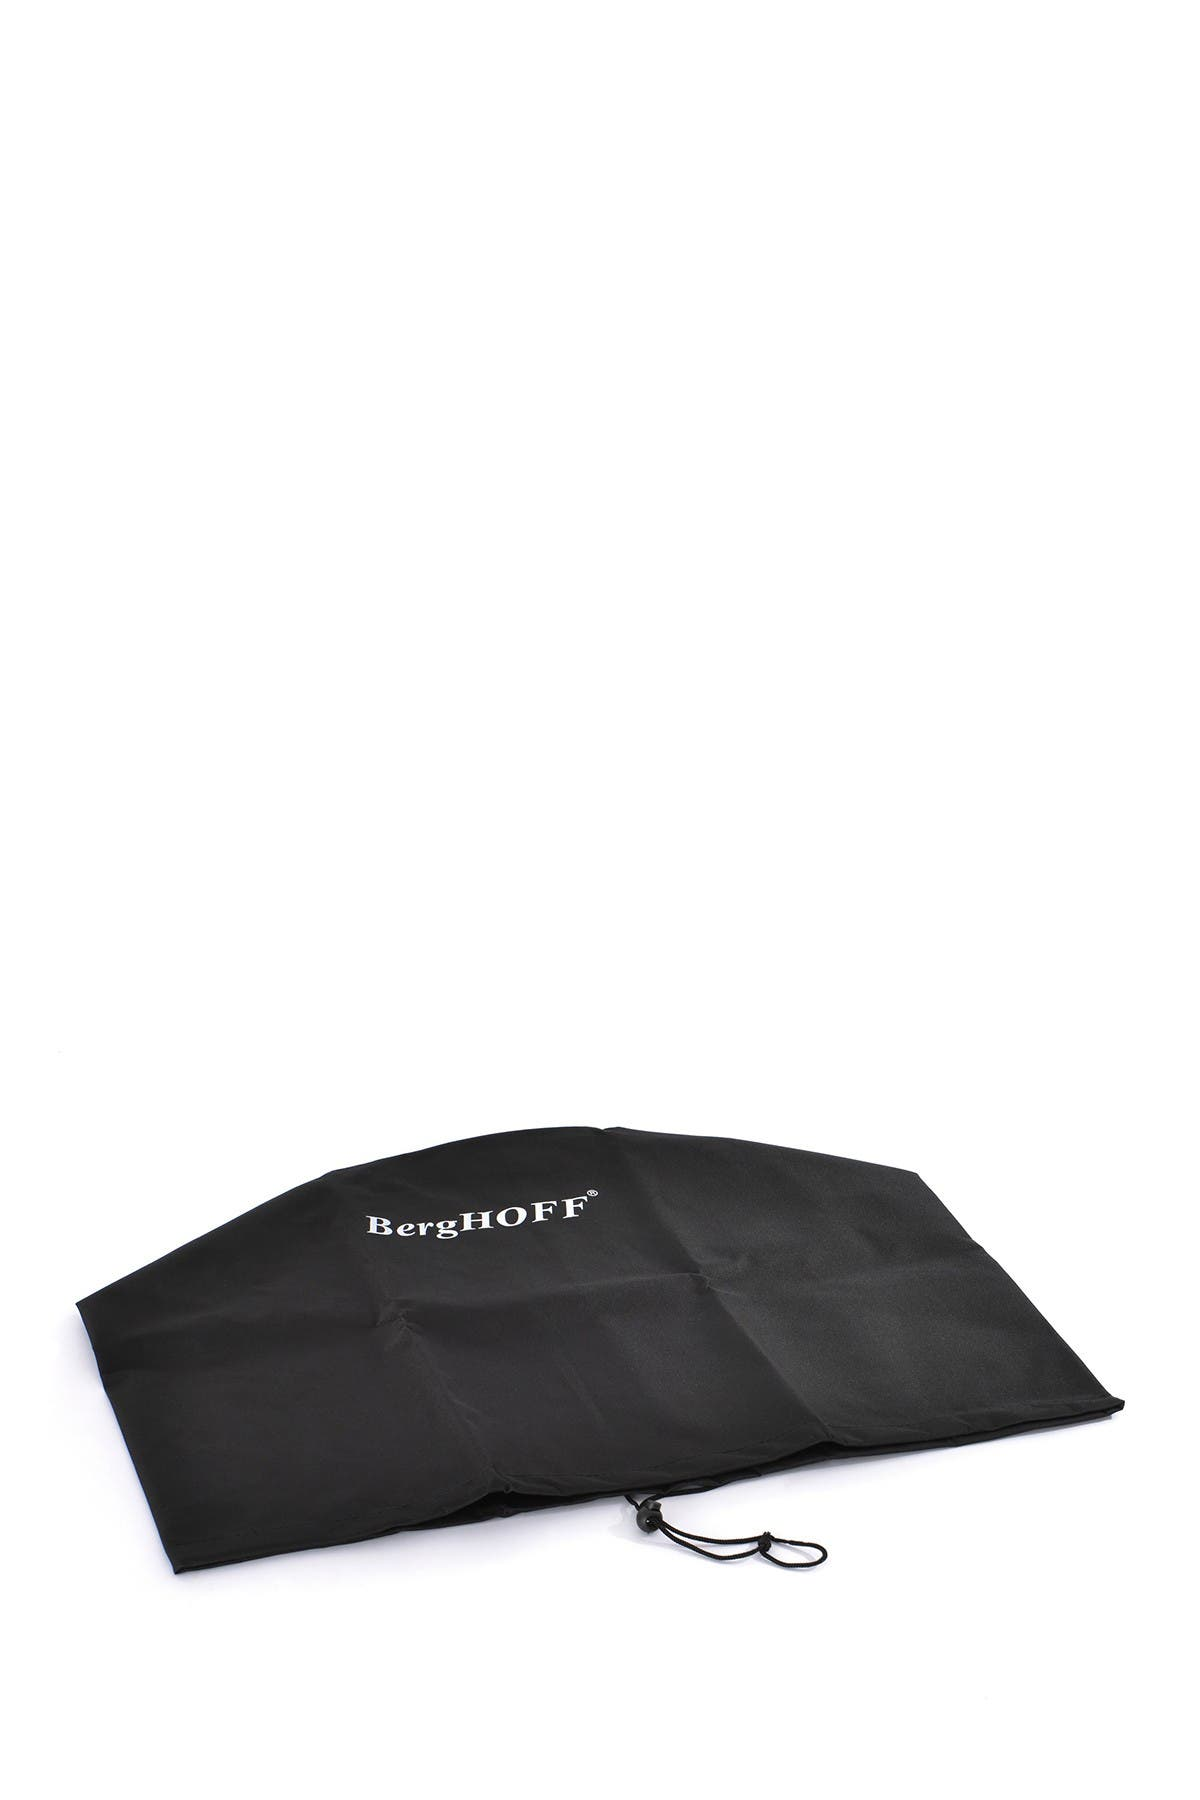 Berghoff Black Small Outdoor Bbq Cover Nordstrom Rack